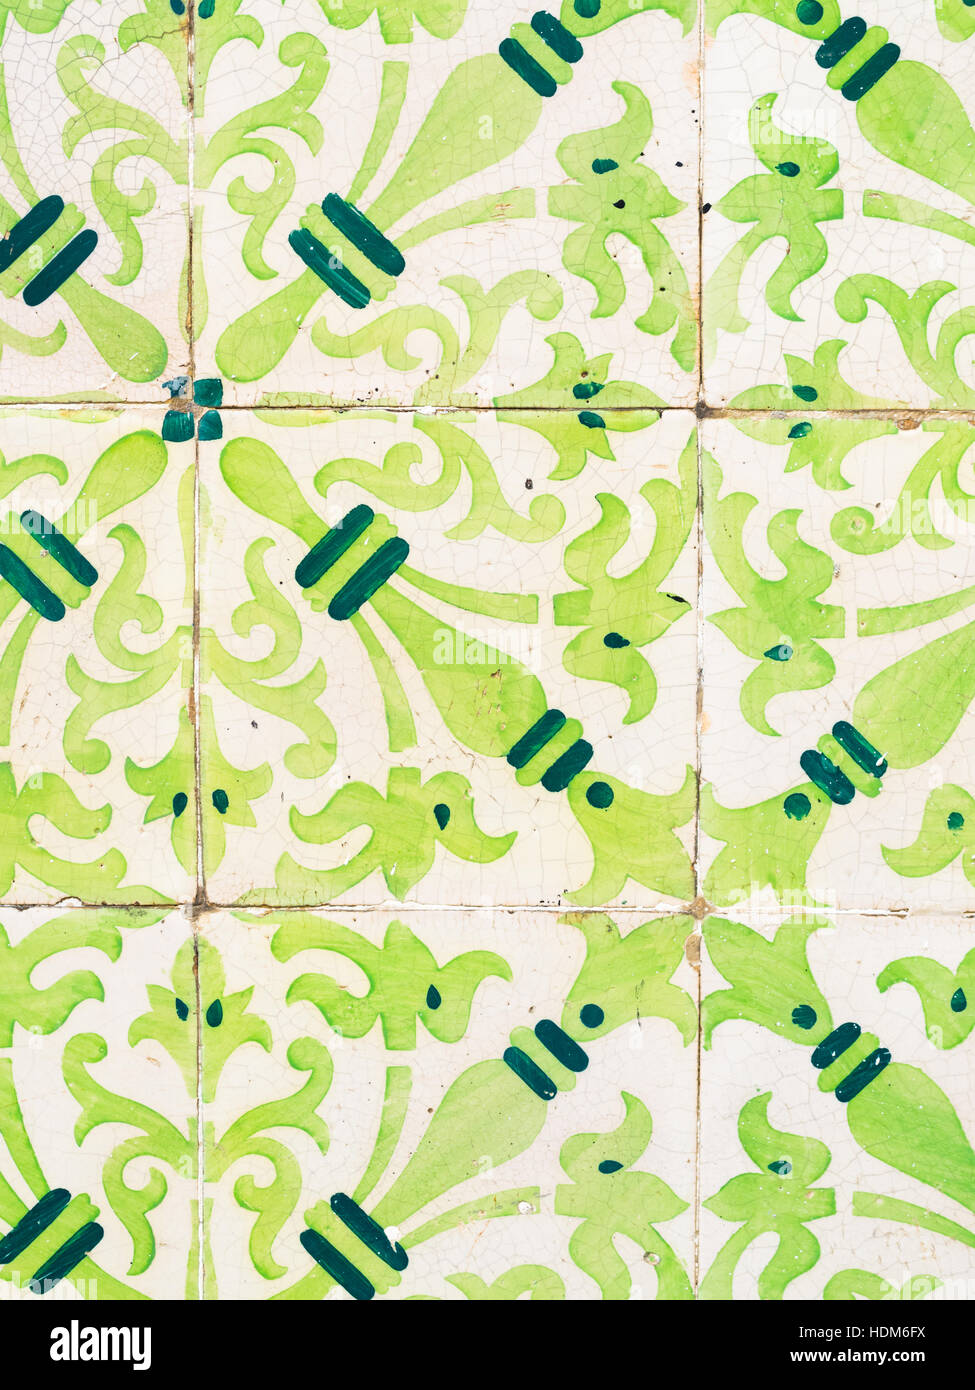 Green azulejos, old tiles in the Old Town of Lisbon, Portugal, close up. - Stock Image